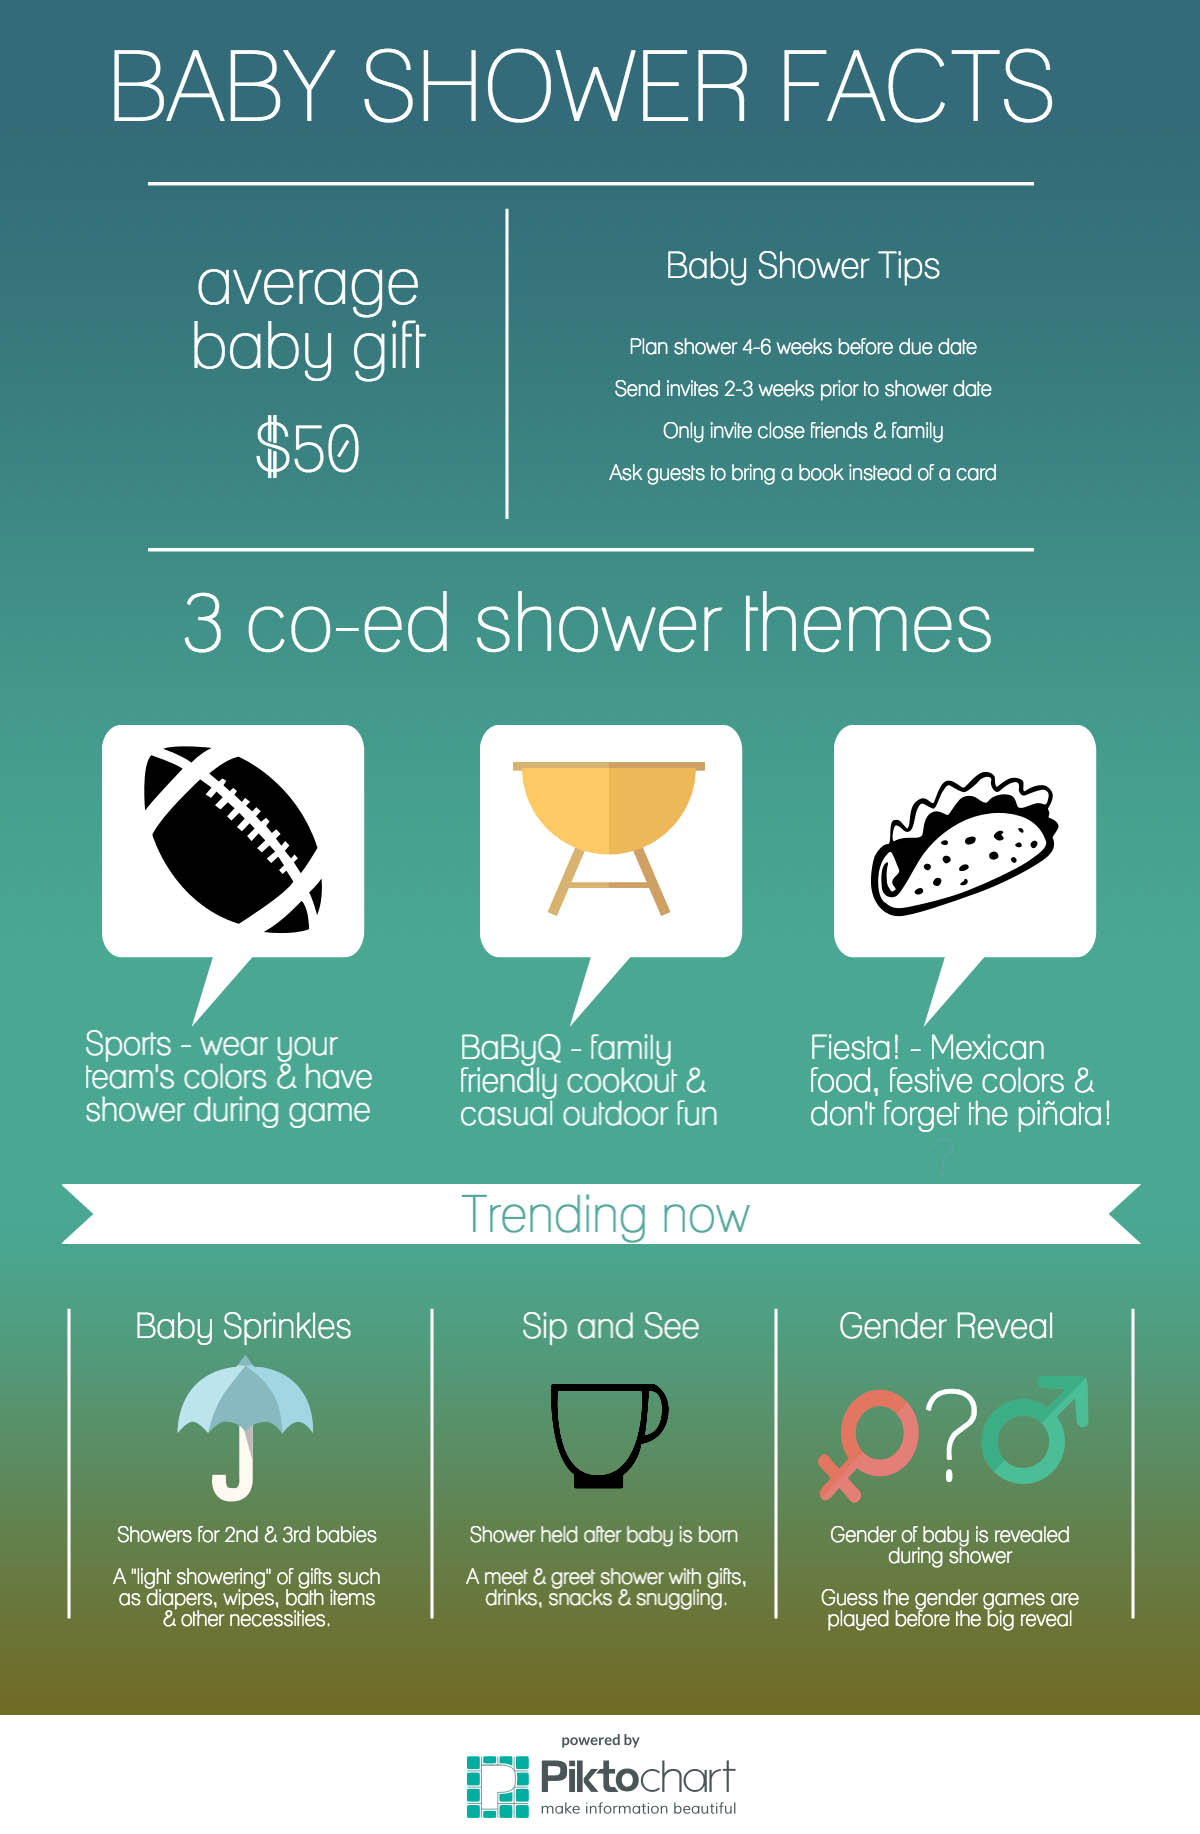 Infographic about the baby shower fun facts